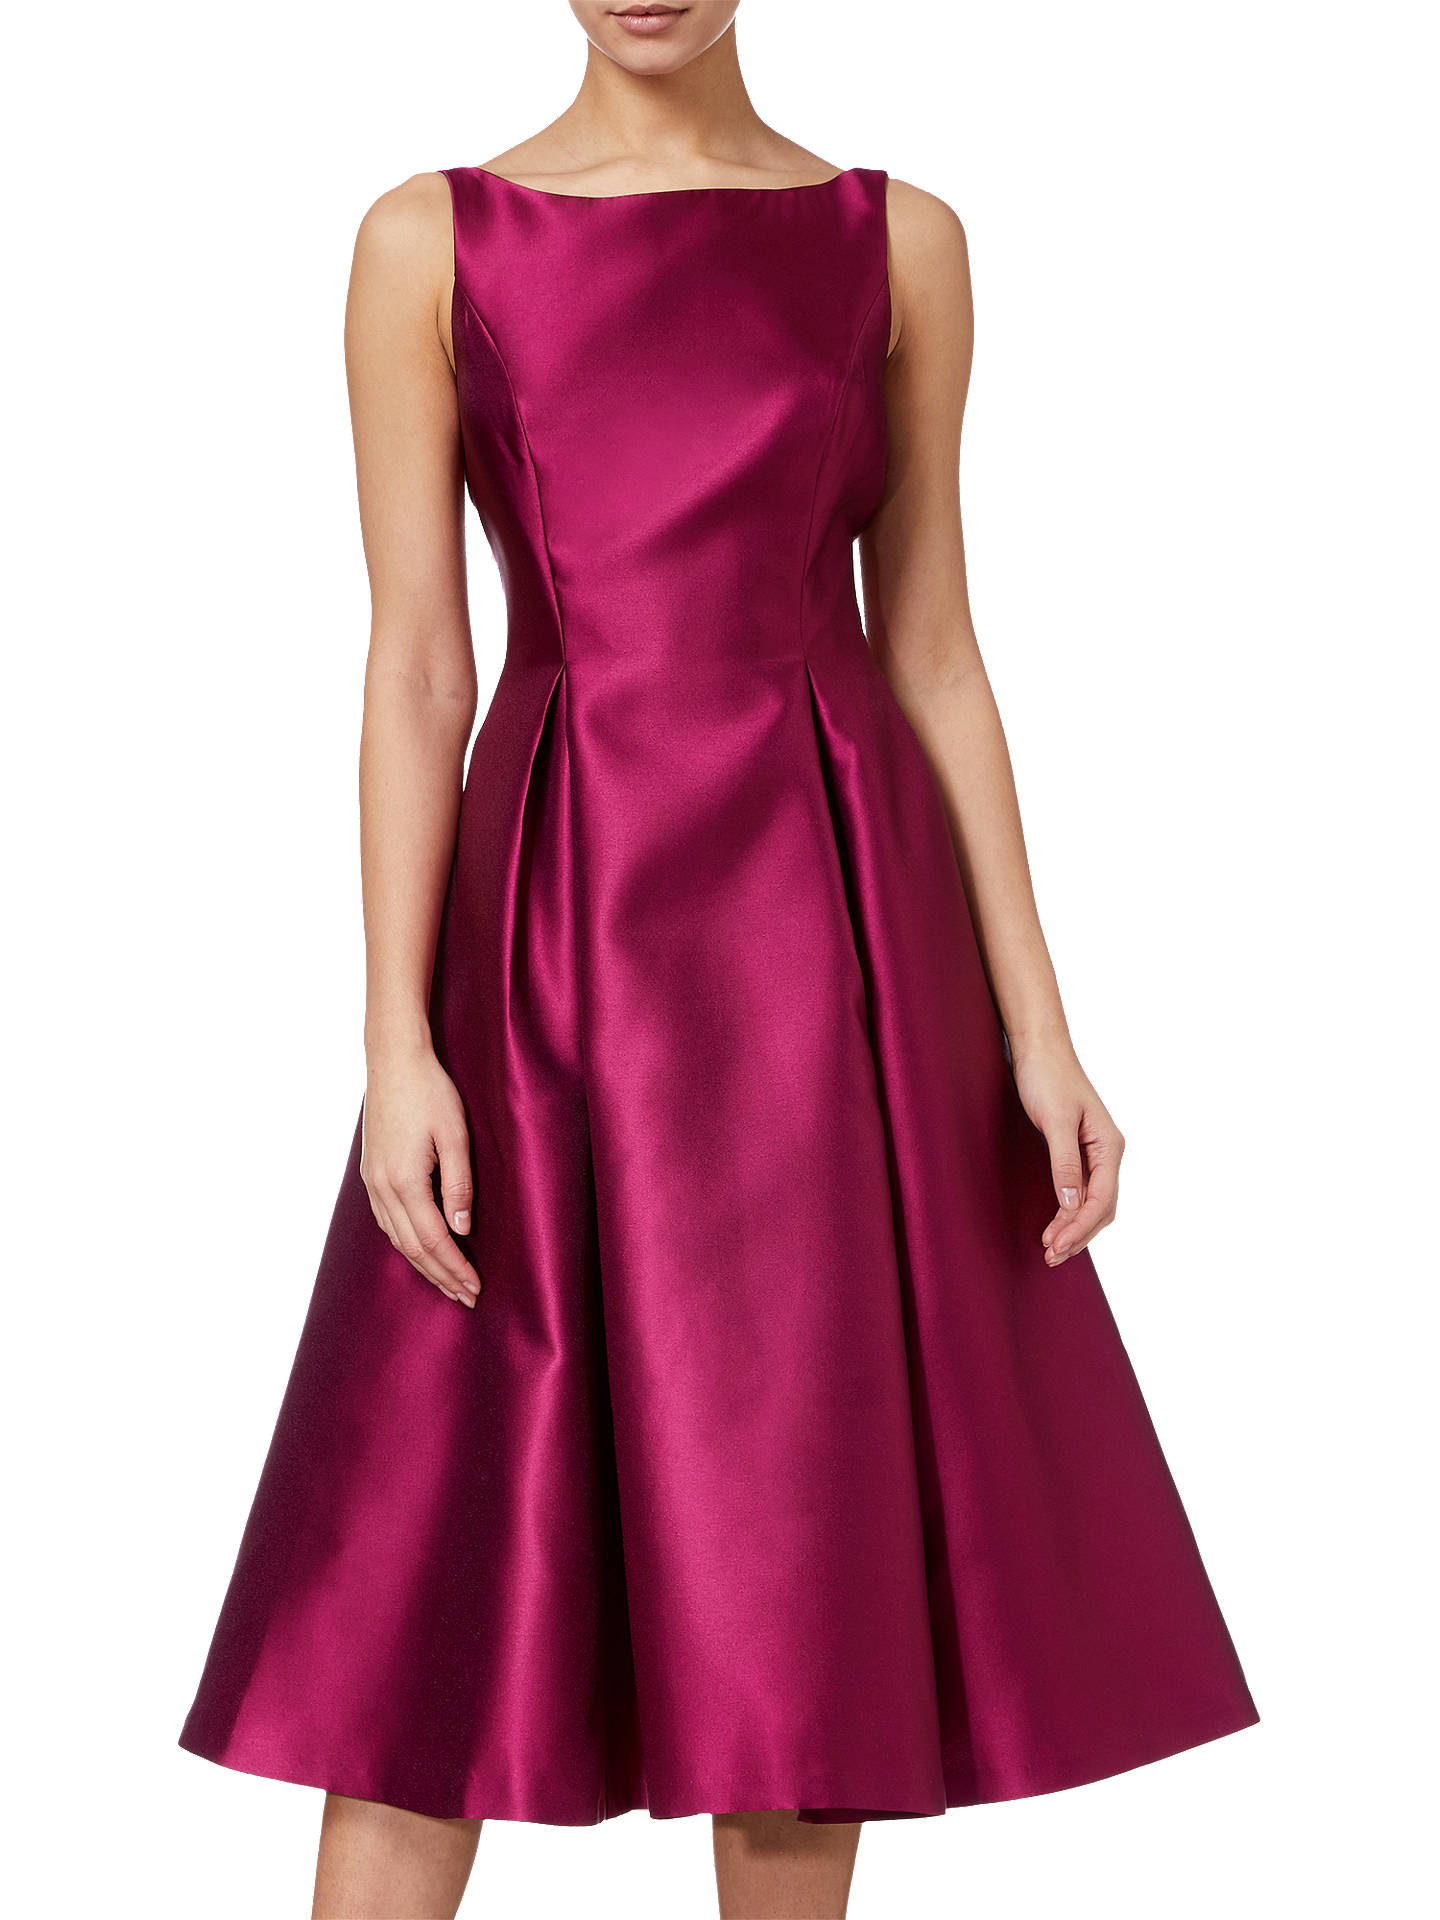 Buy Adrianna Papell Sleeveless Tea Length Dress, Red Plum, 8 Online at johnlewis.com